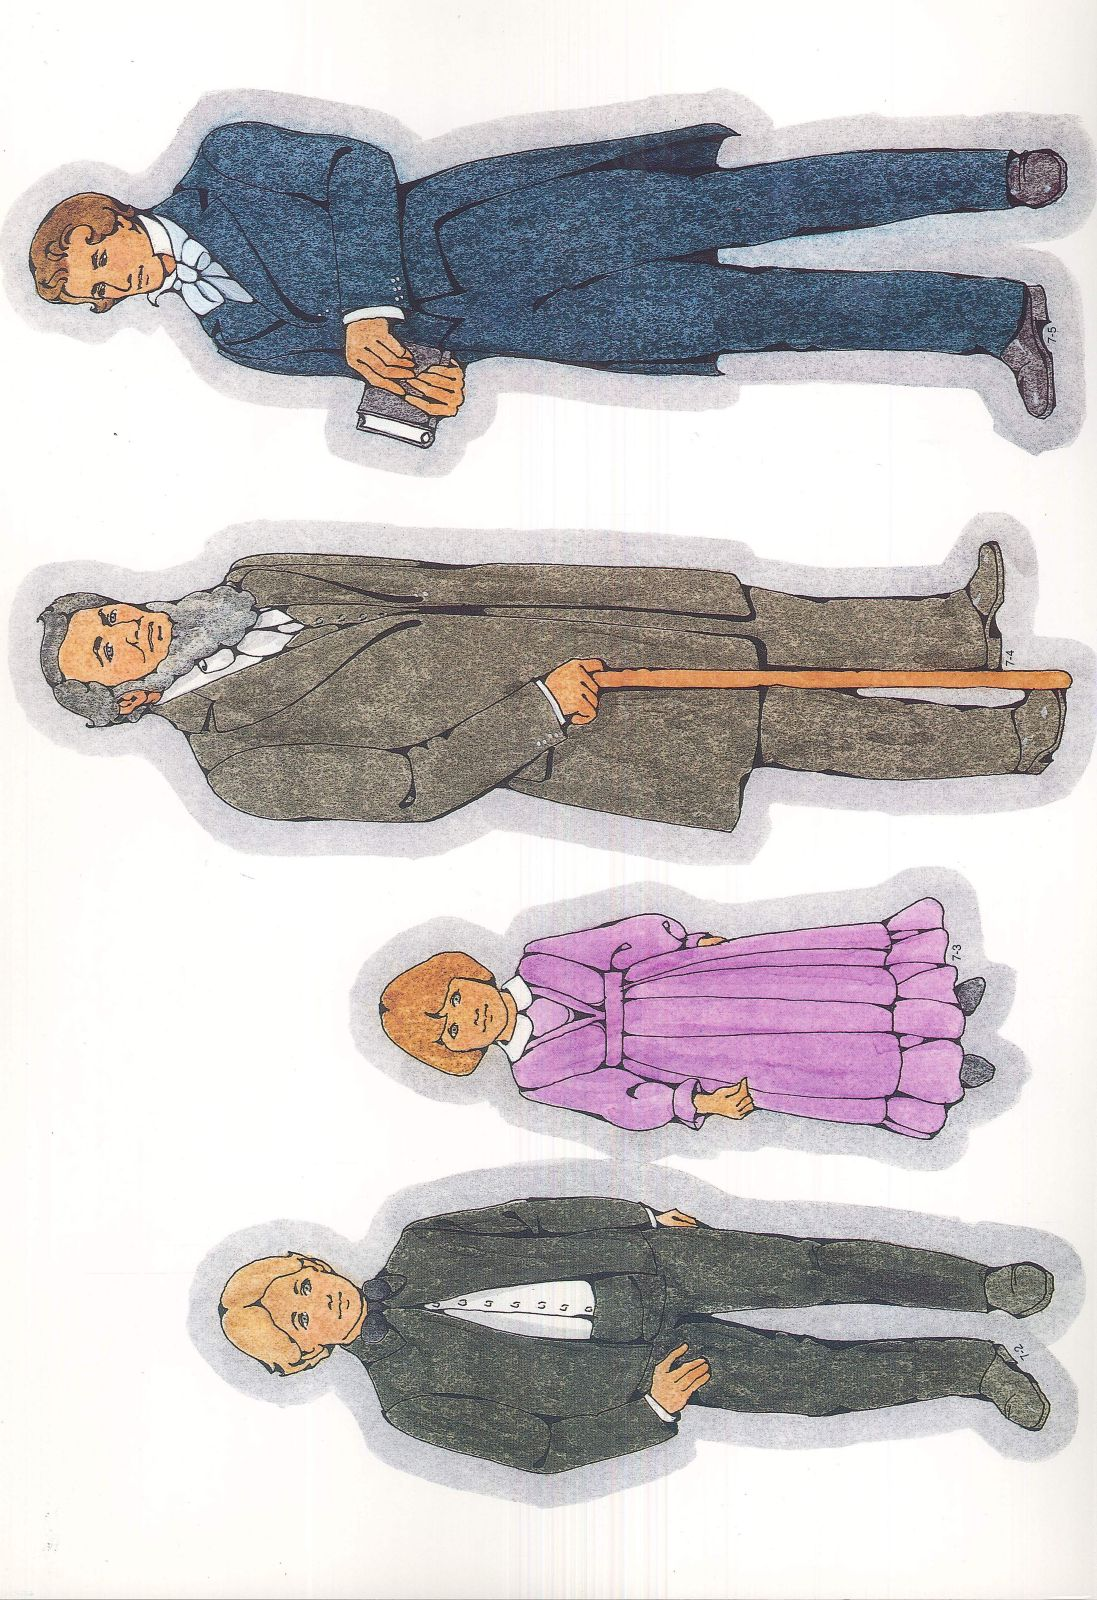 Primary Cutouts from lds.org. #ldsprimary | primary | Pinterest ...